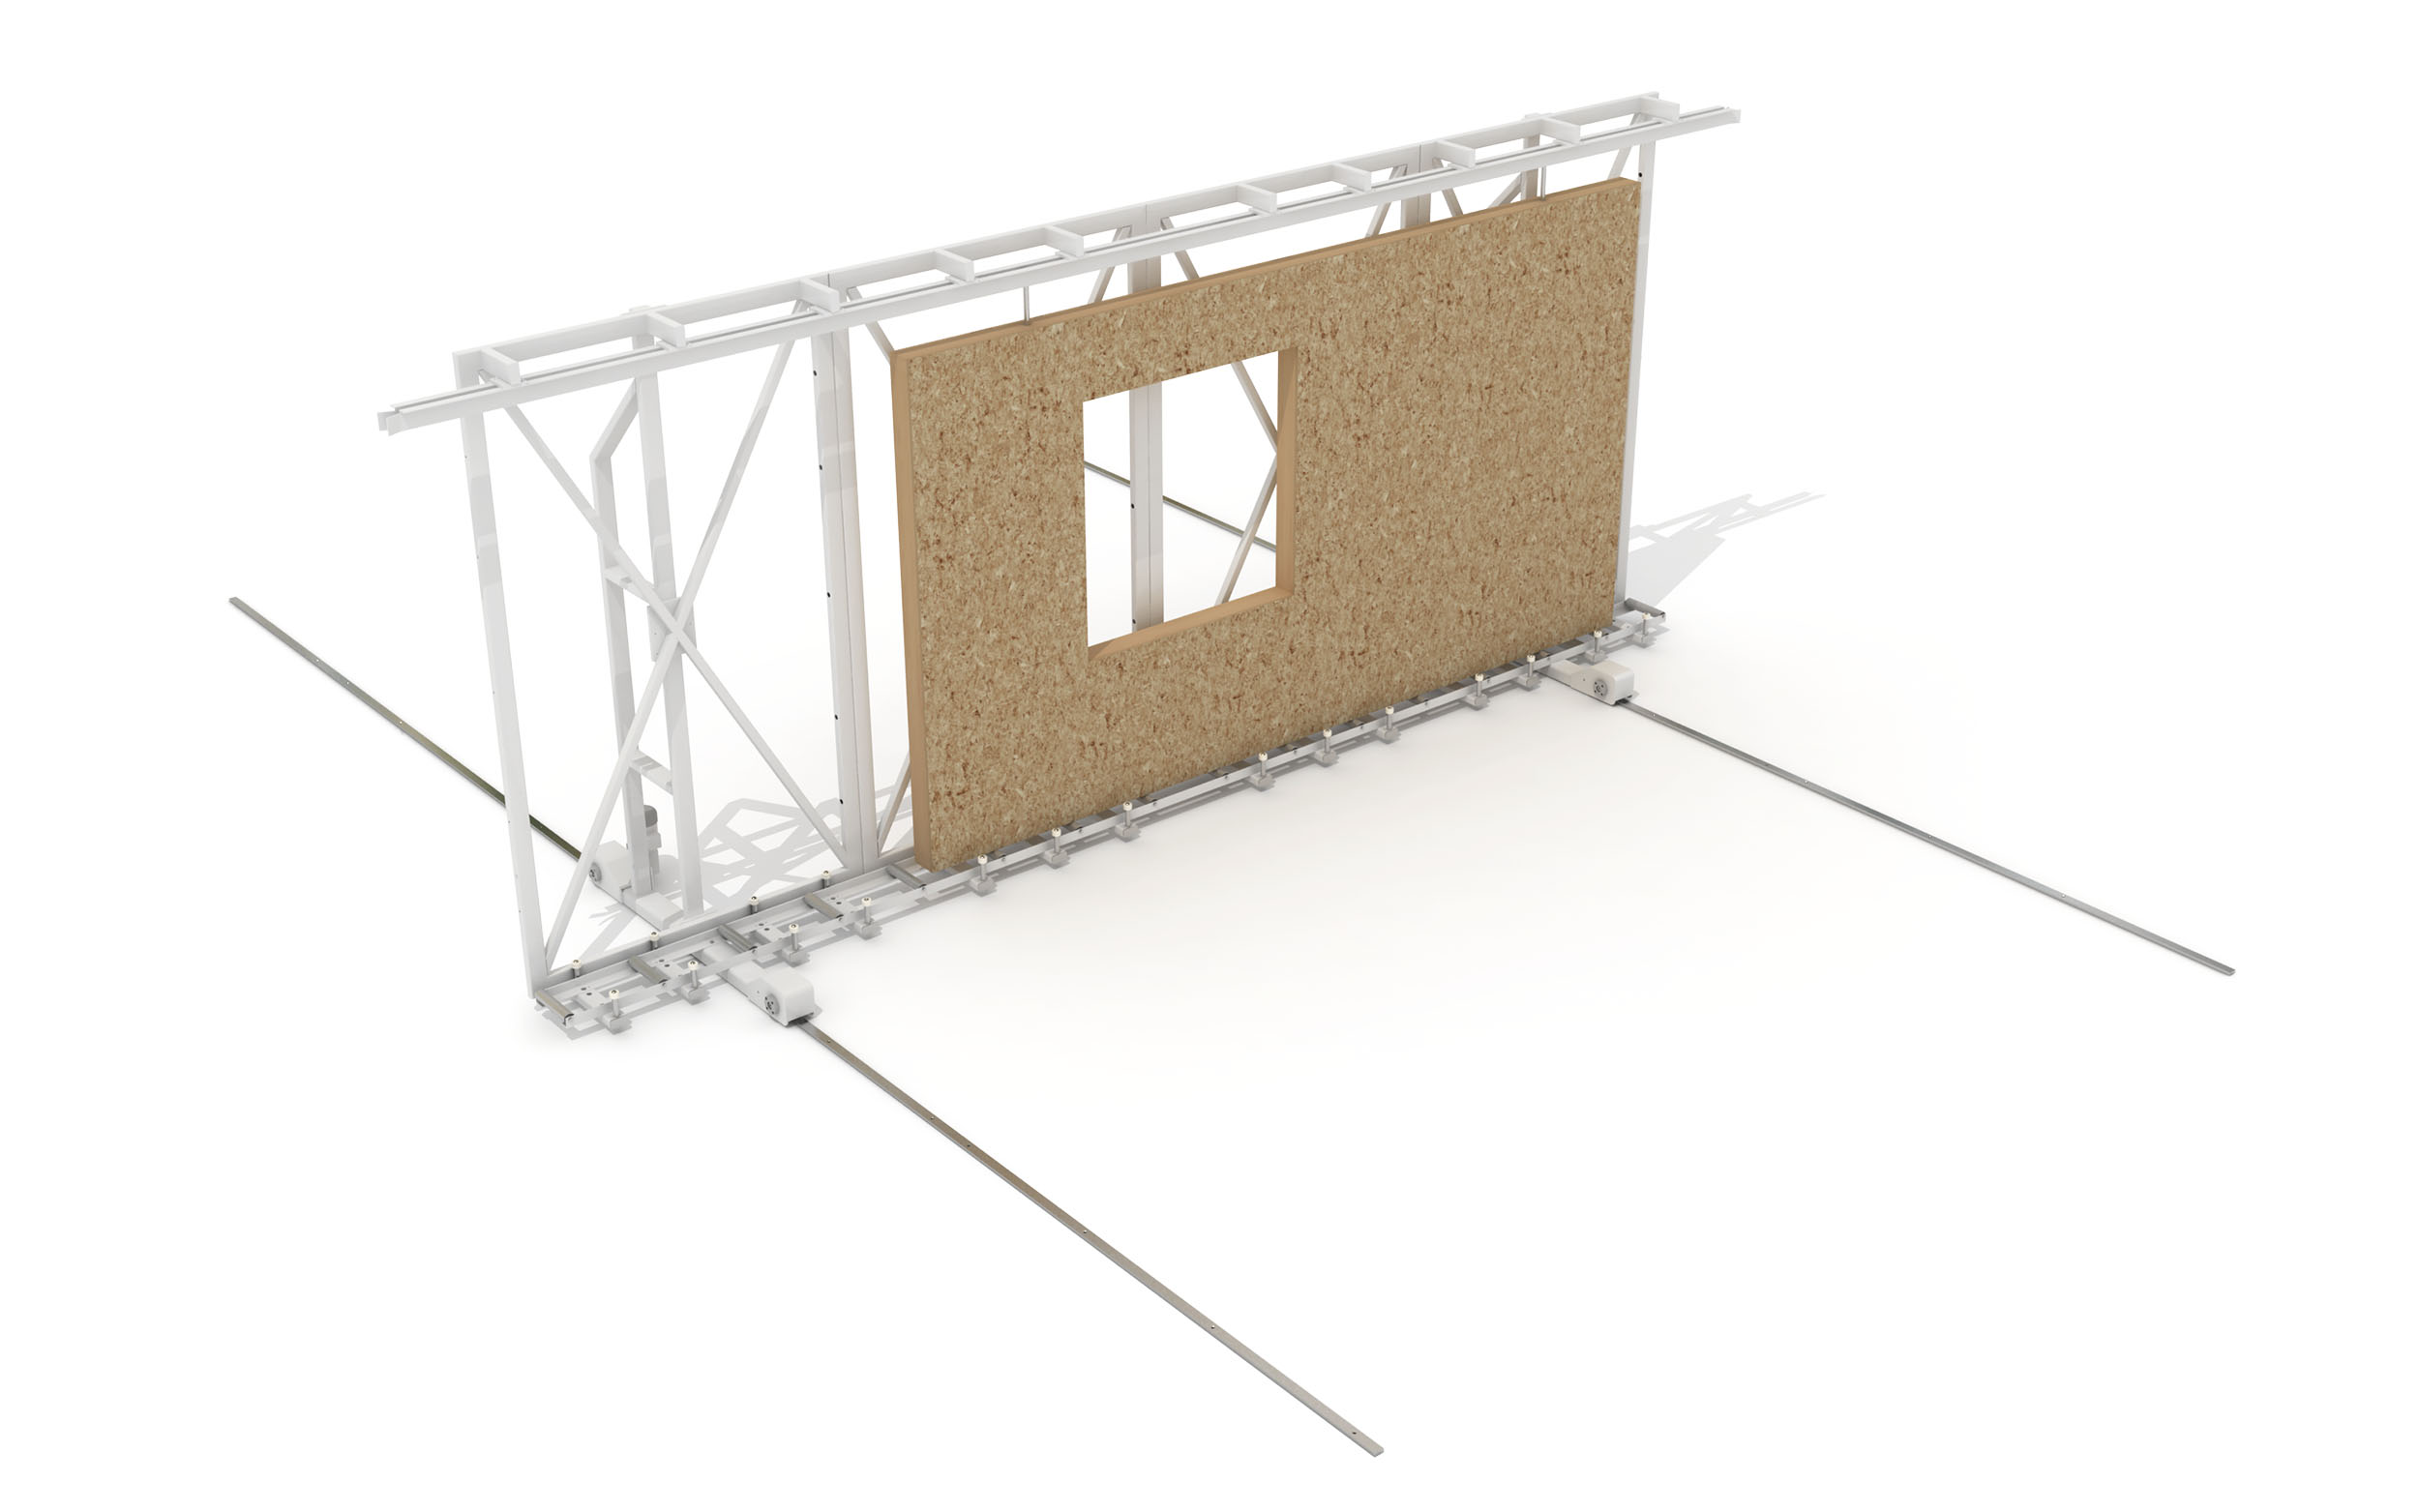 Motorized Vertical Panel Transporter for Semi Automated Off-Site Building Production